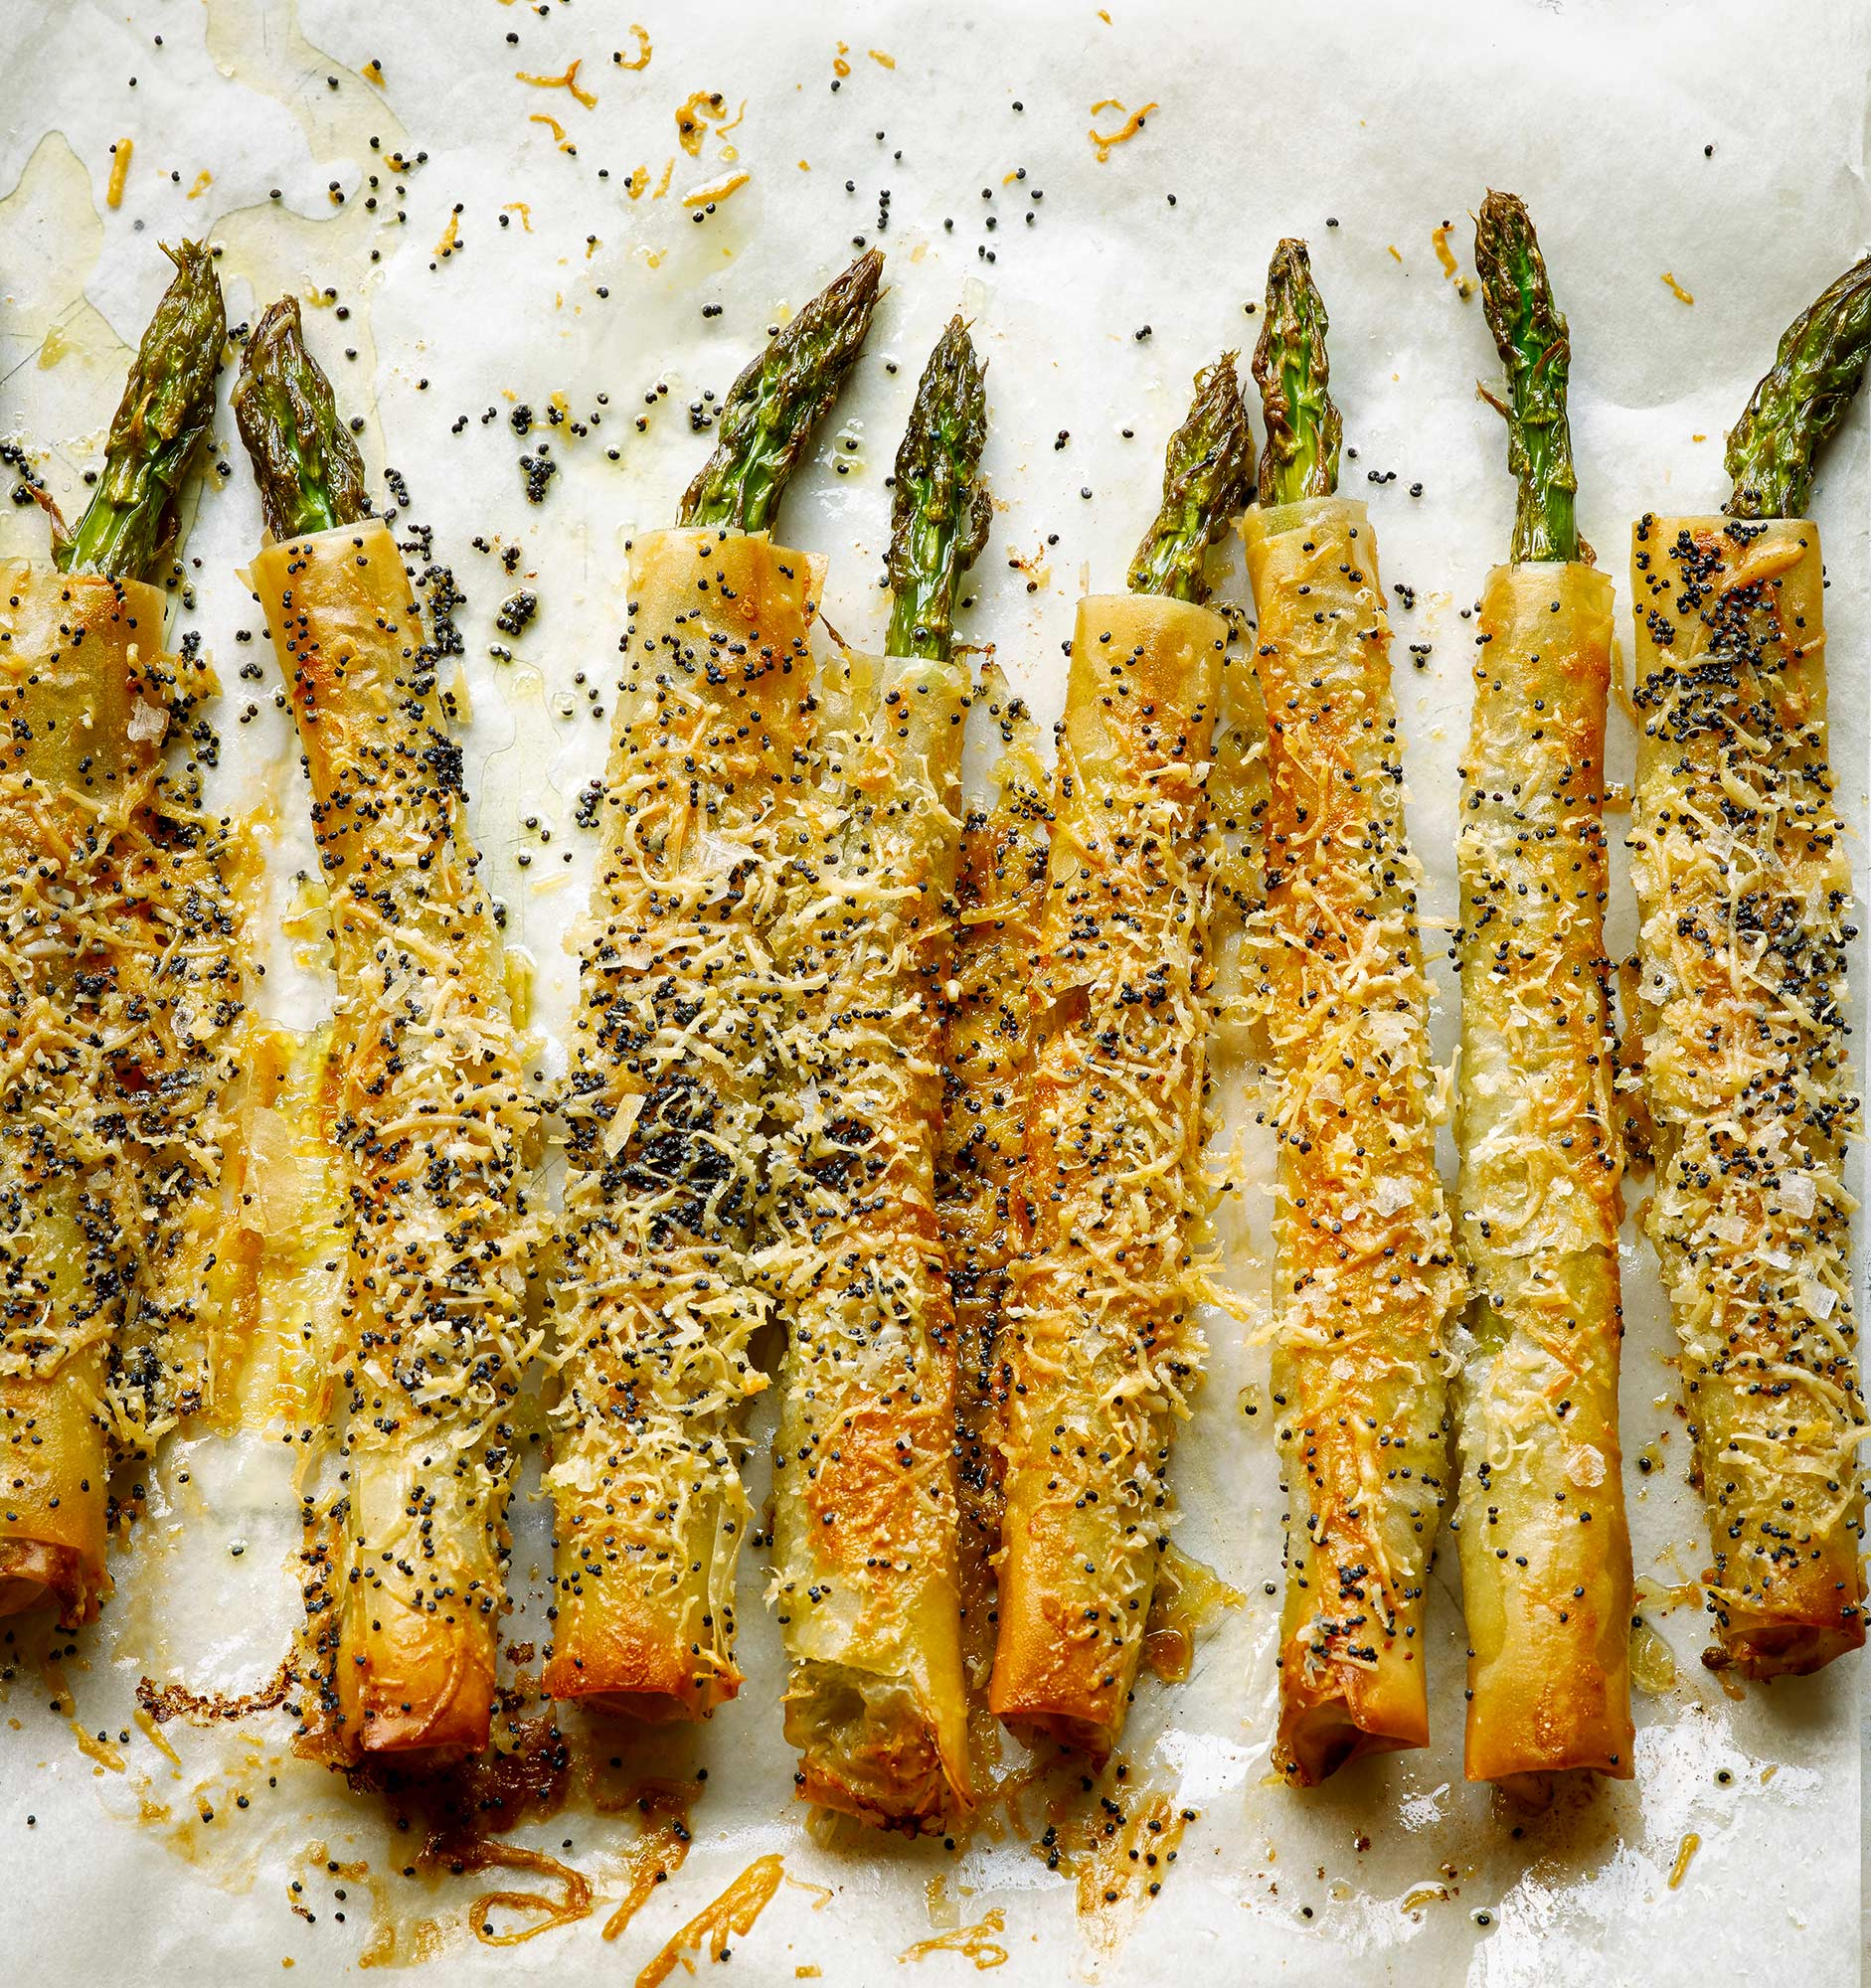 Baked-Asparagus-with-Parmesan-and-Poppy-Seeds | Food Photography